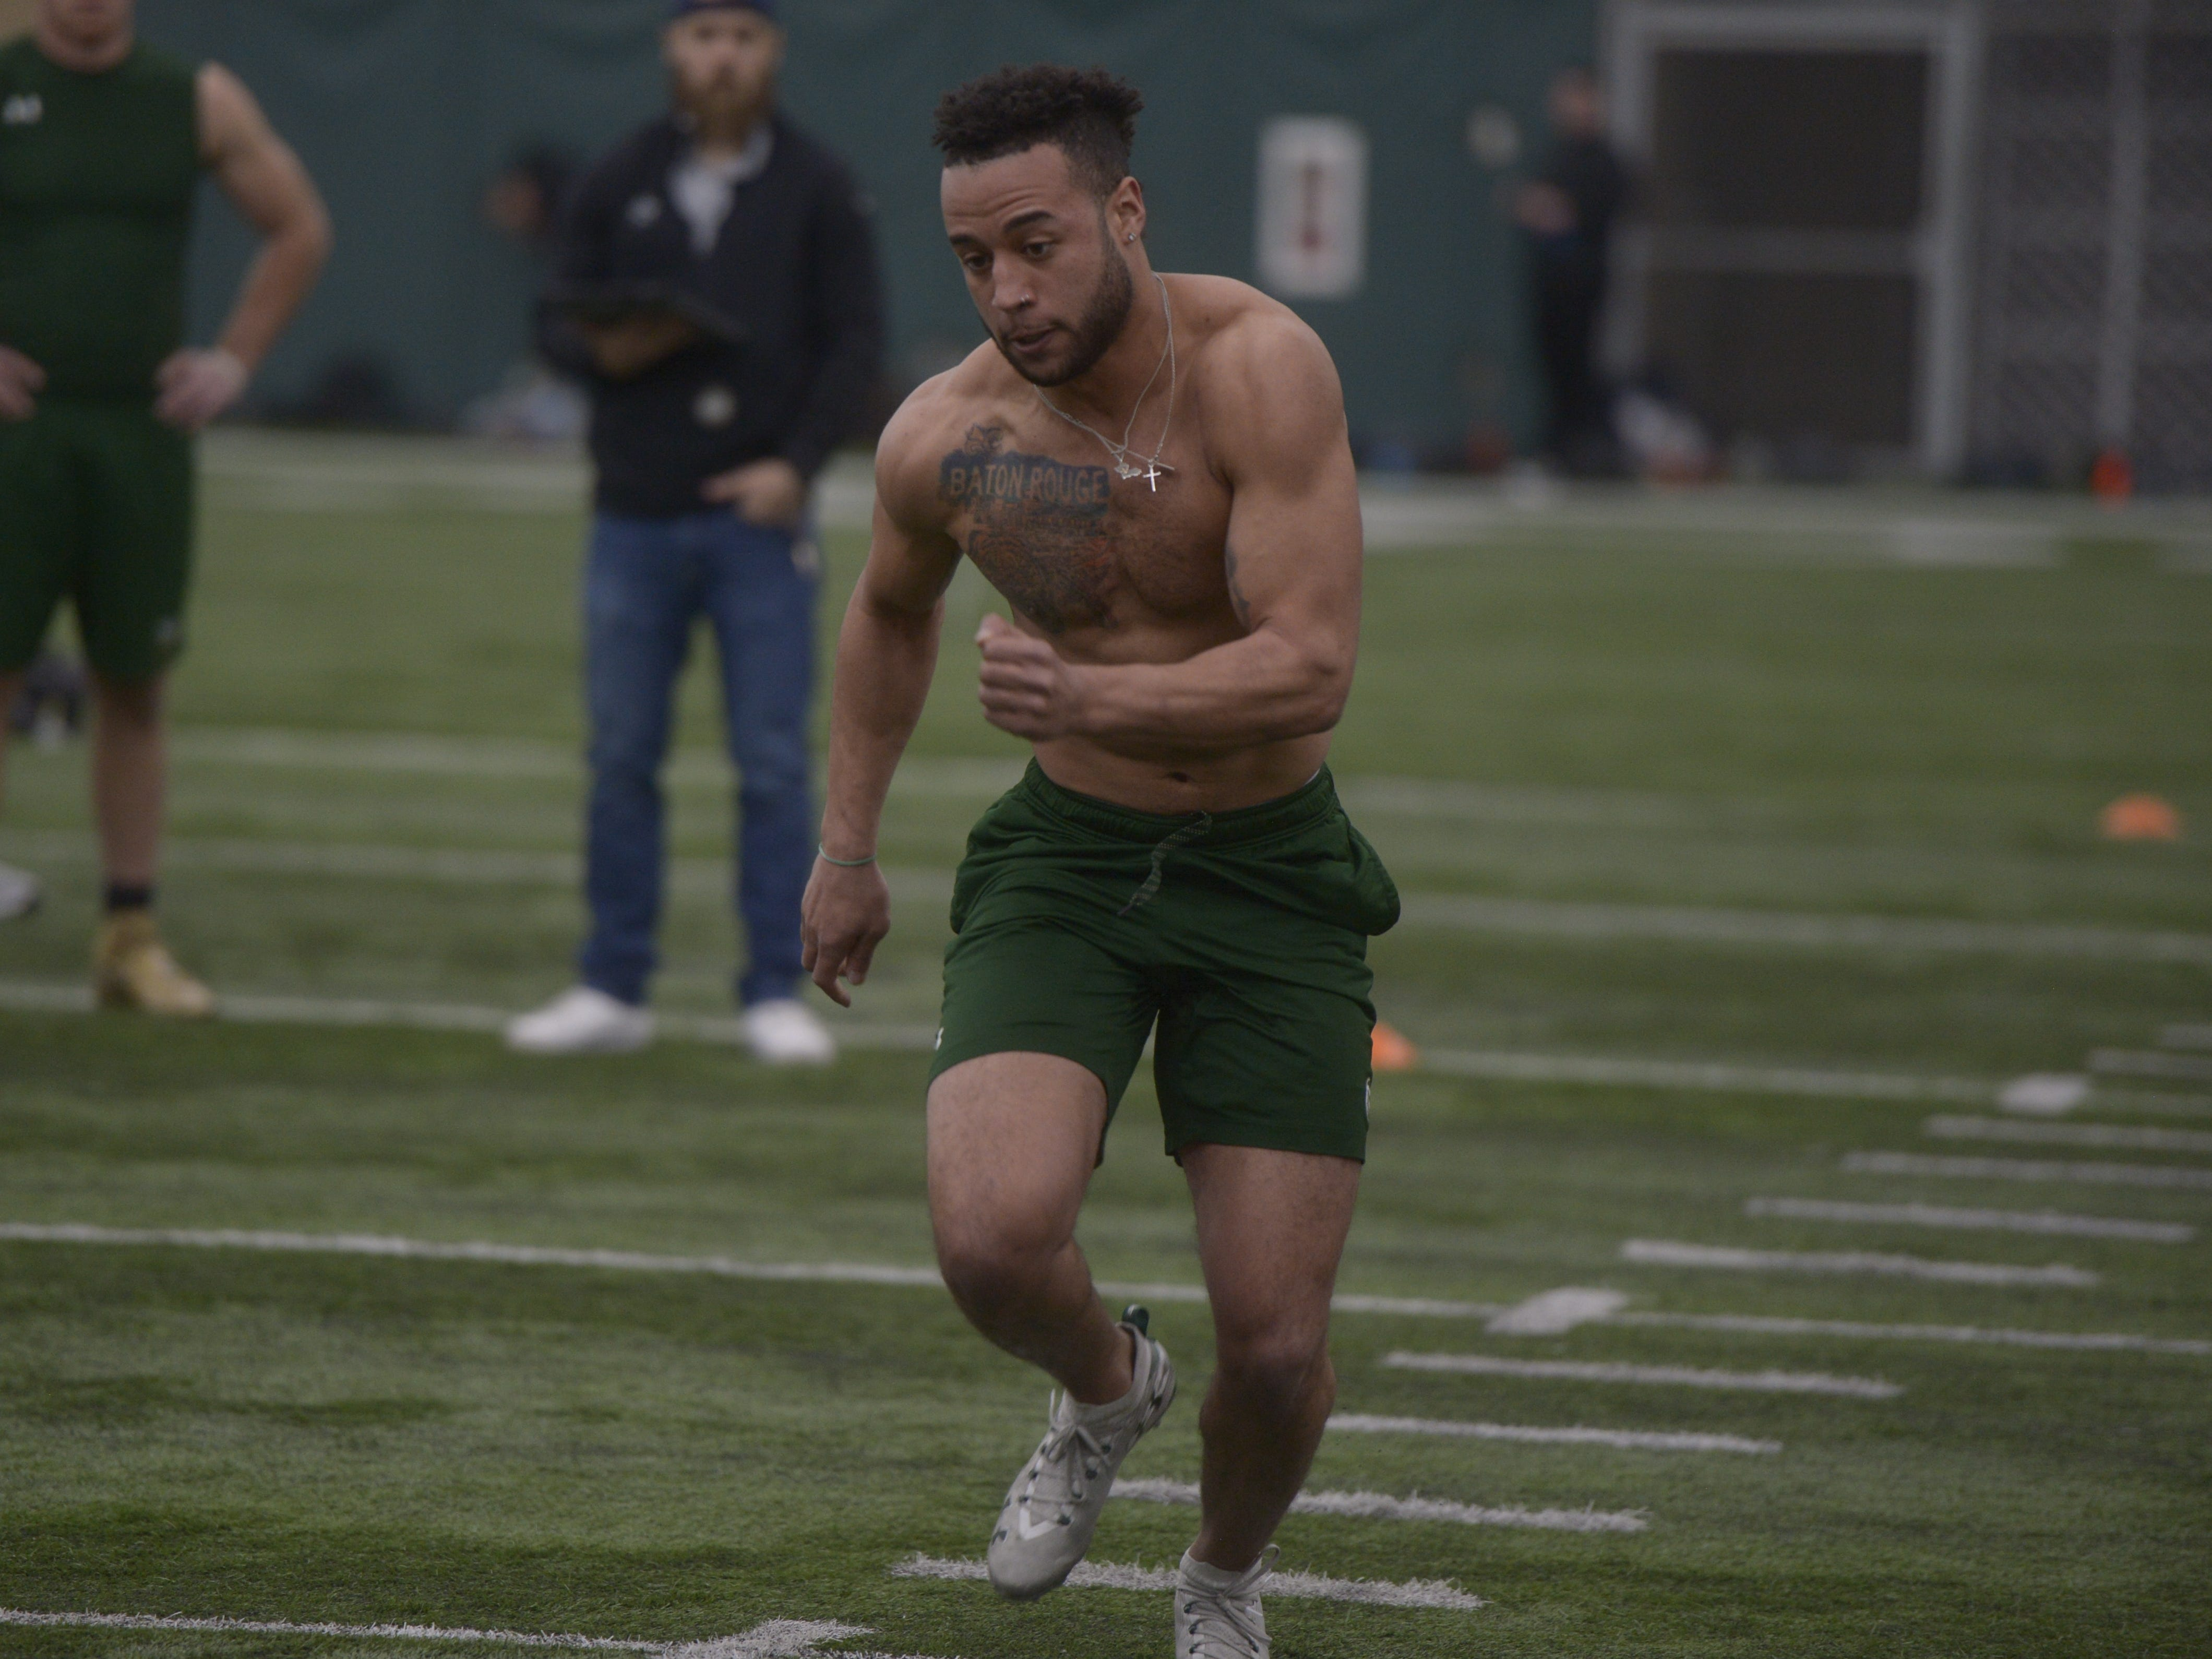 Former Colorado State cornerback V.J. Banks participates in the cone drill at CSU's pro day in the Indoor Practice Facility on Wednesday, March 6, 2019.